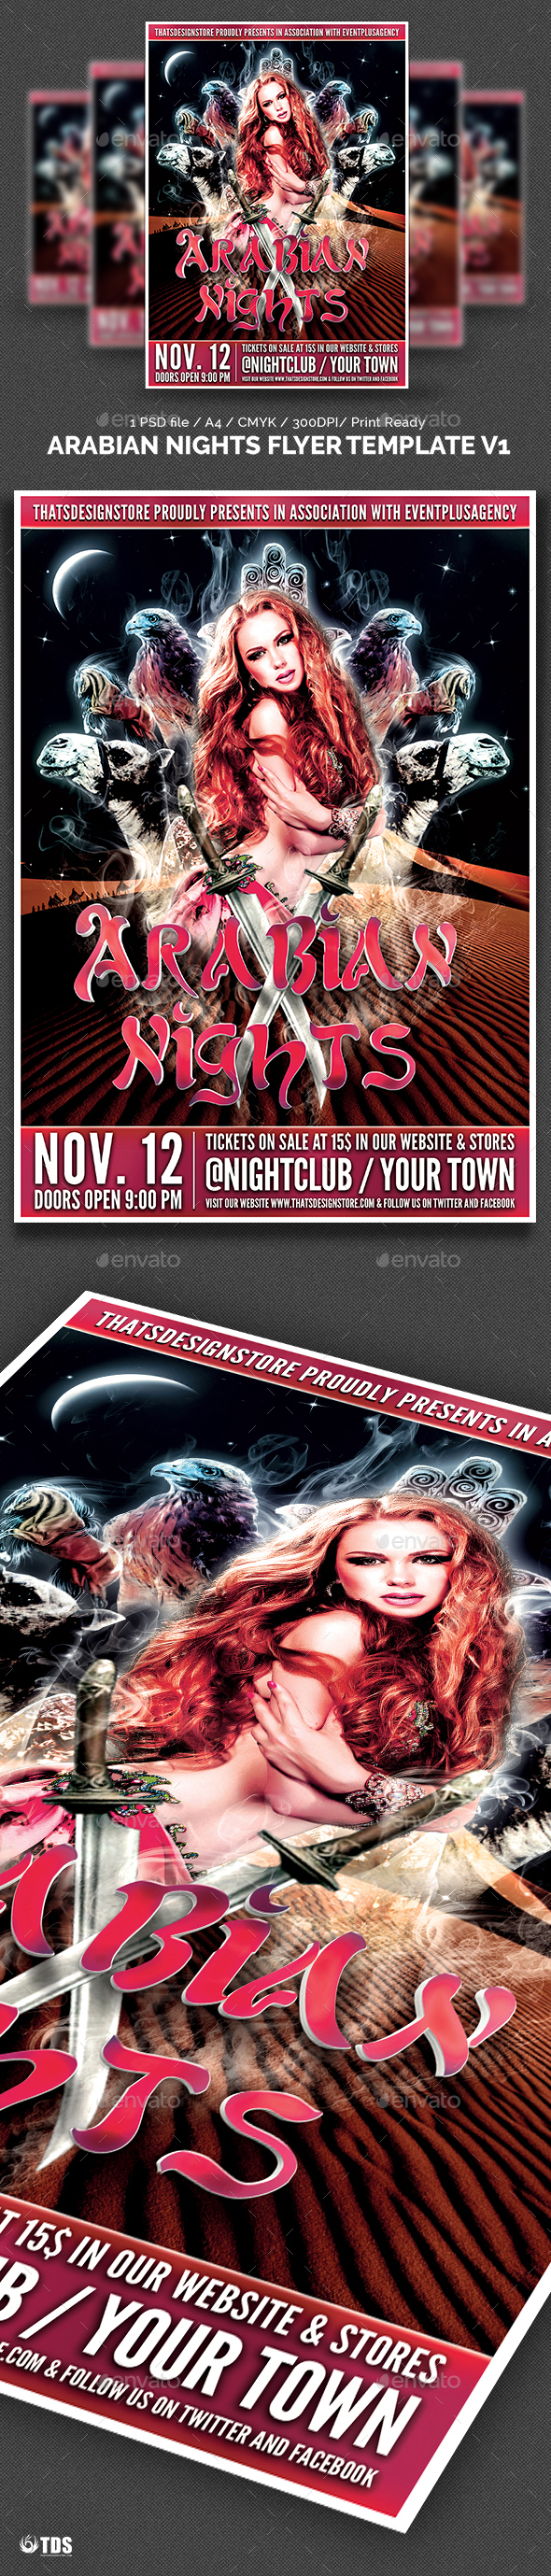 Arabian Nights Flyer Template V1 - Clubs & Parties Events